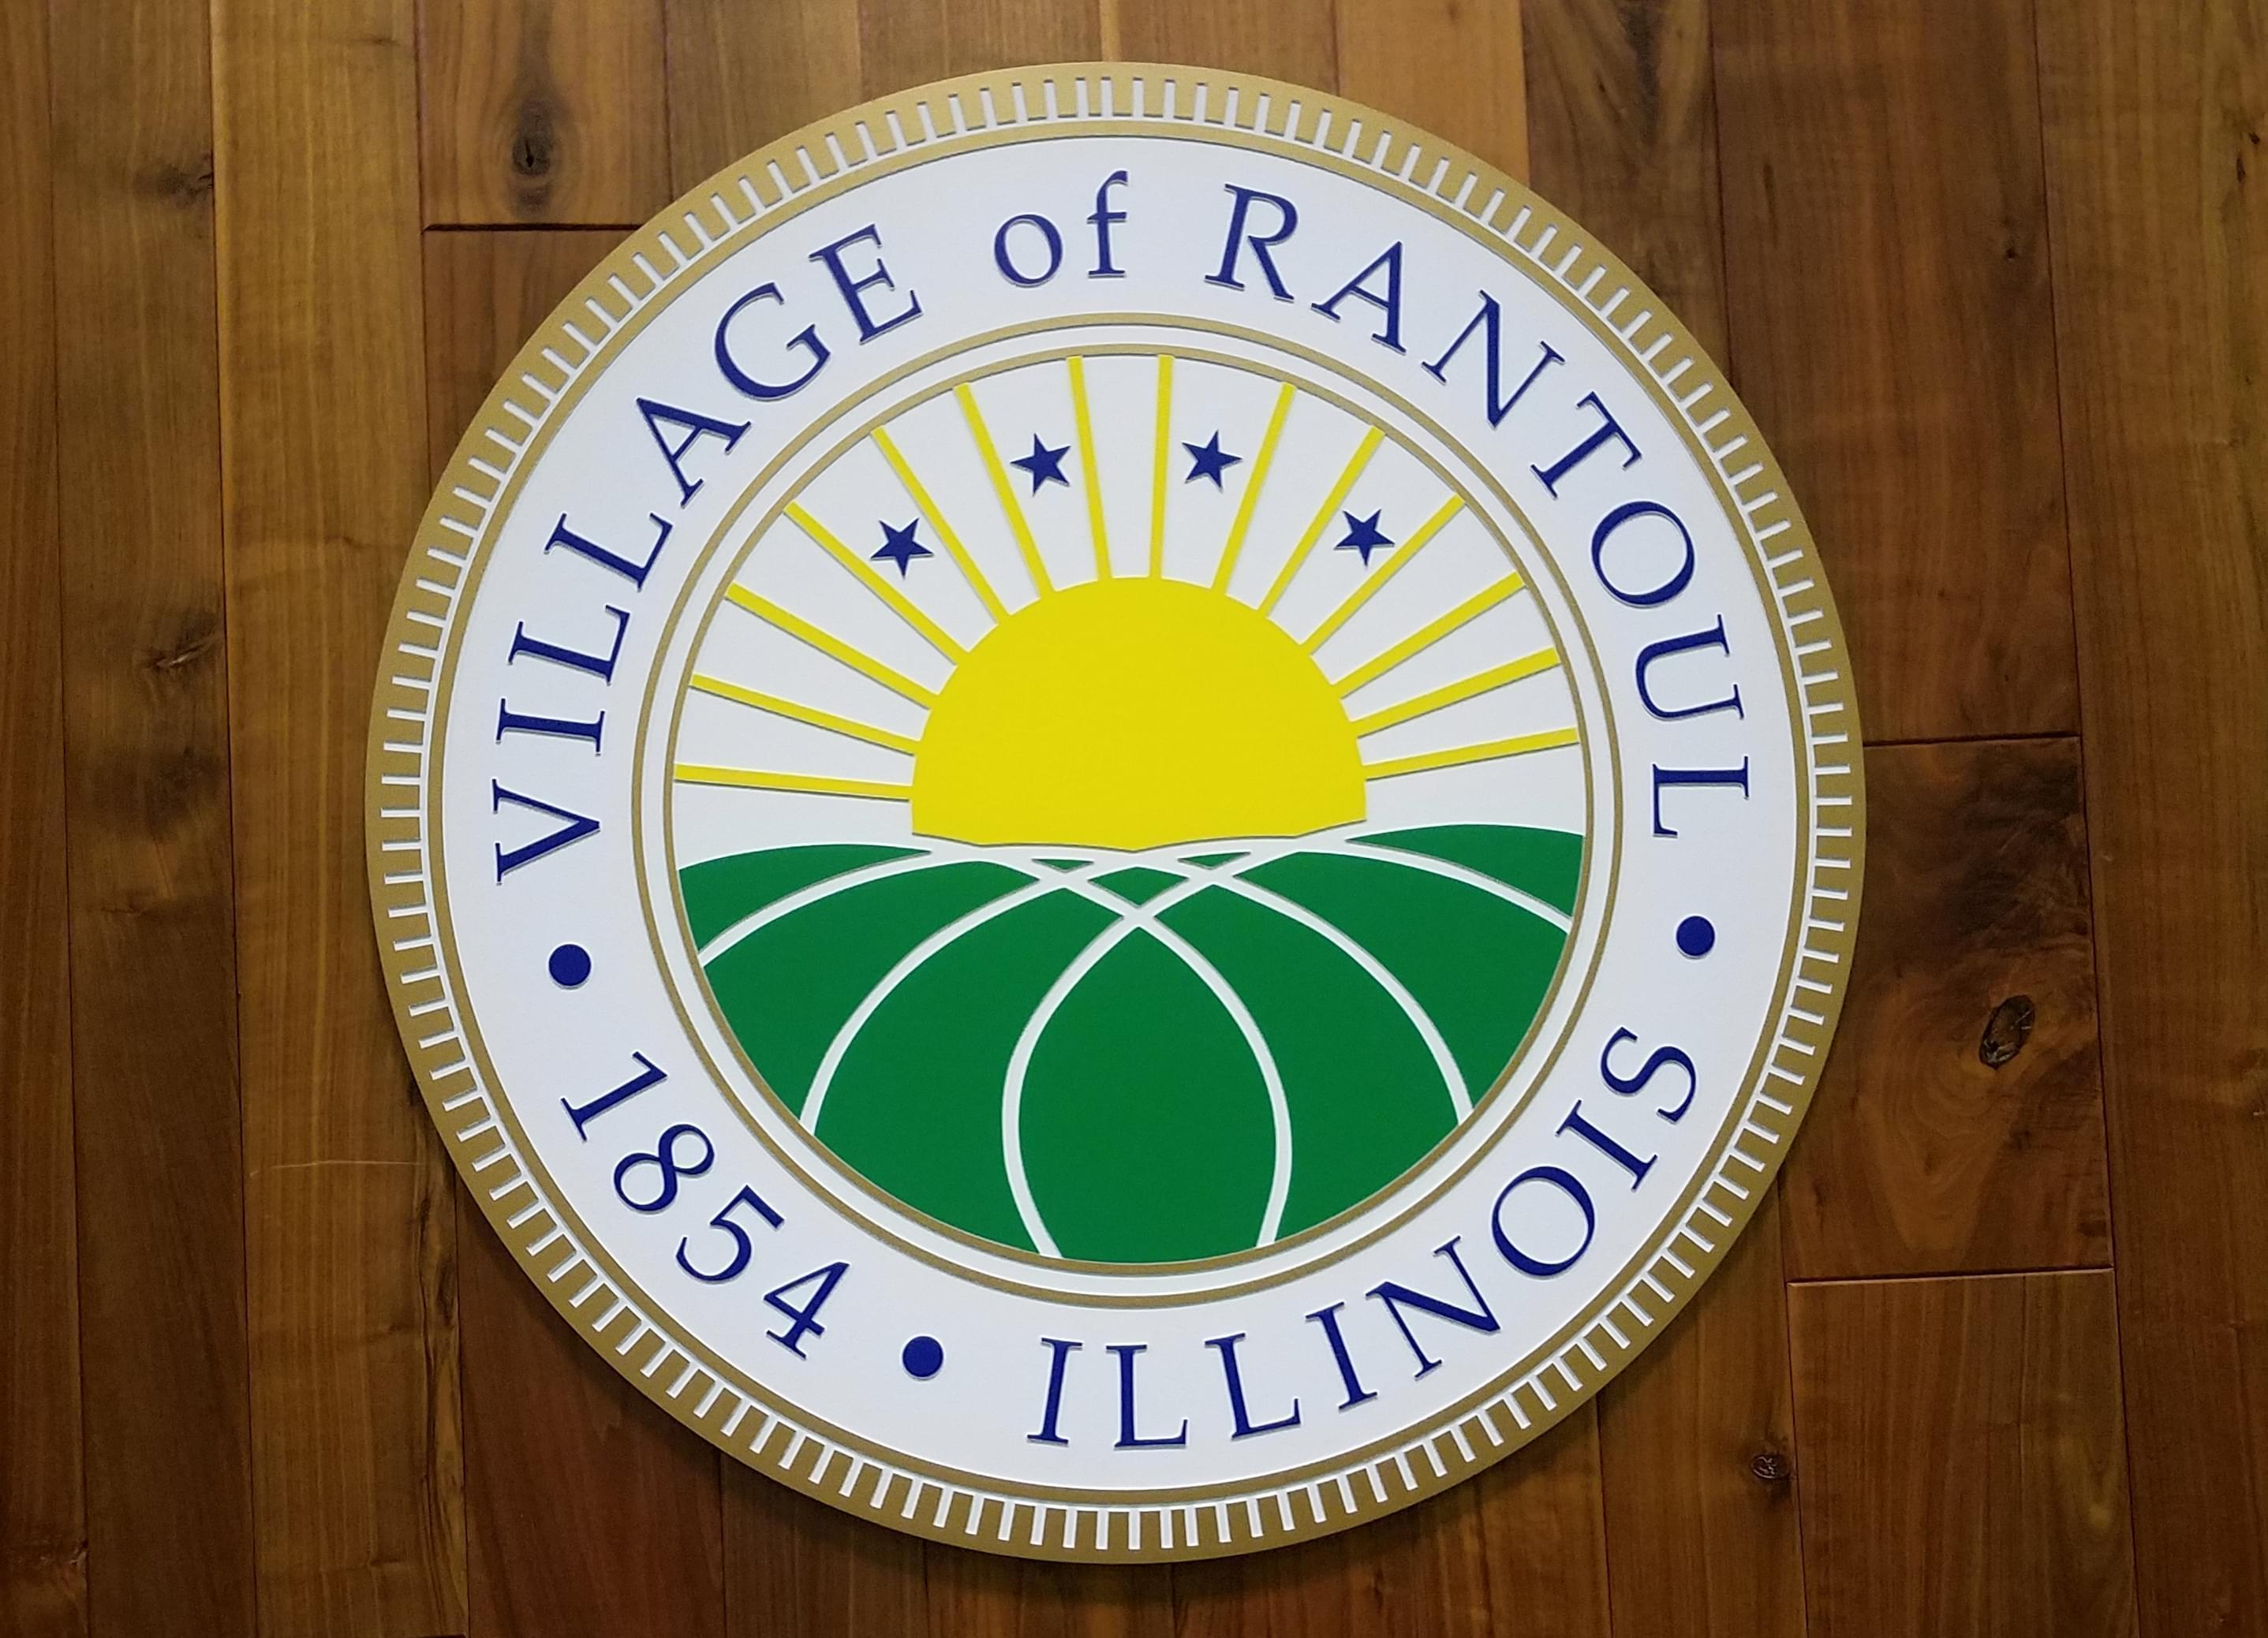 Rantoul village seal, displayed on the wall of the village boardroom.